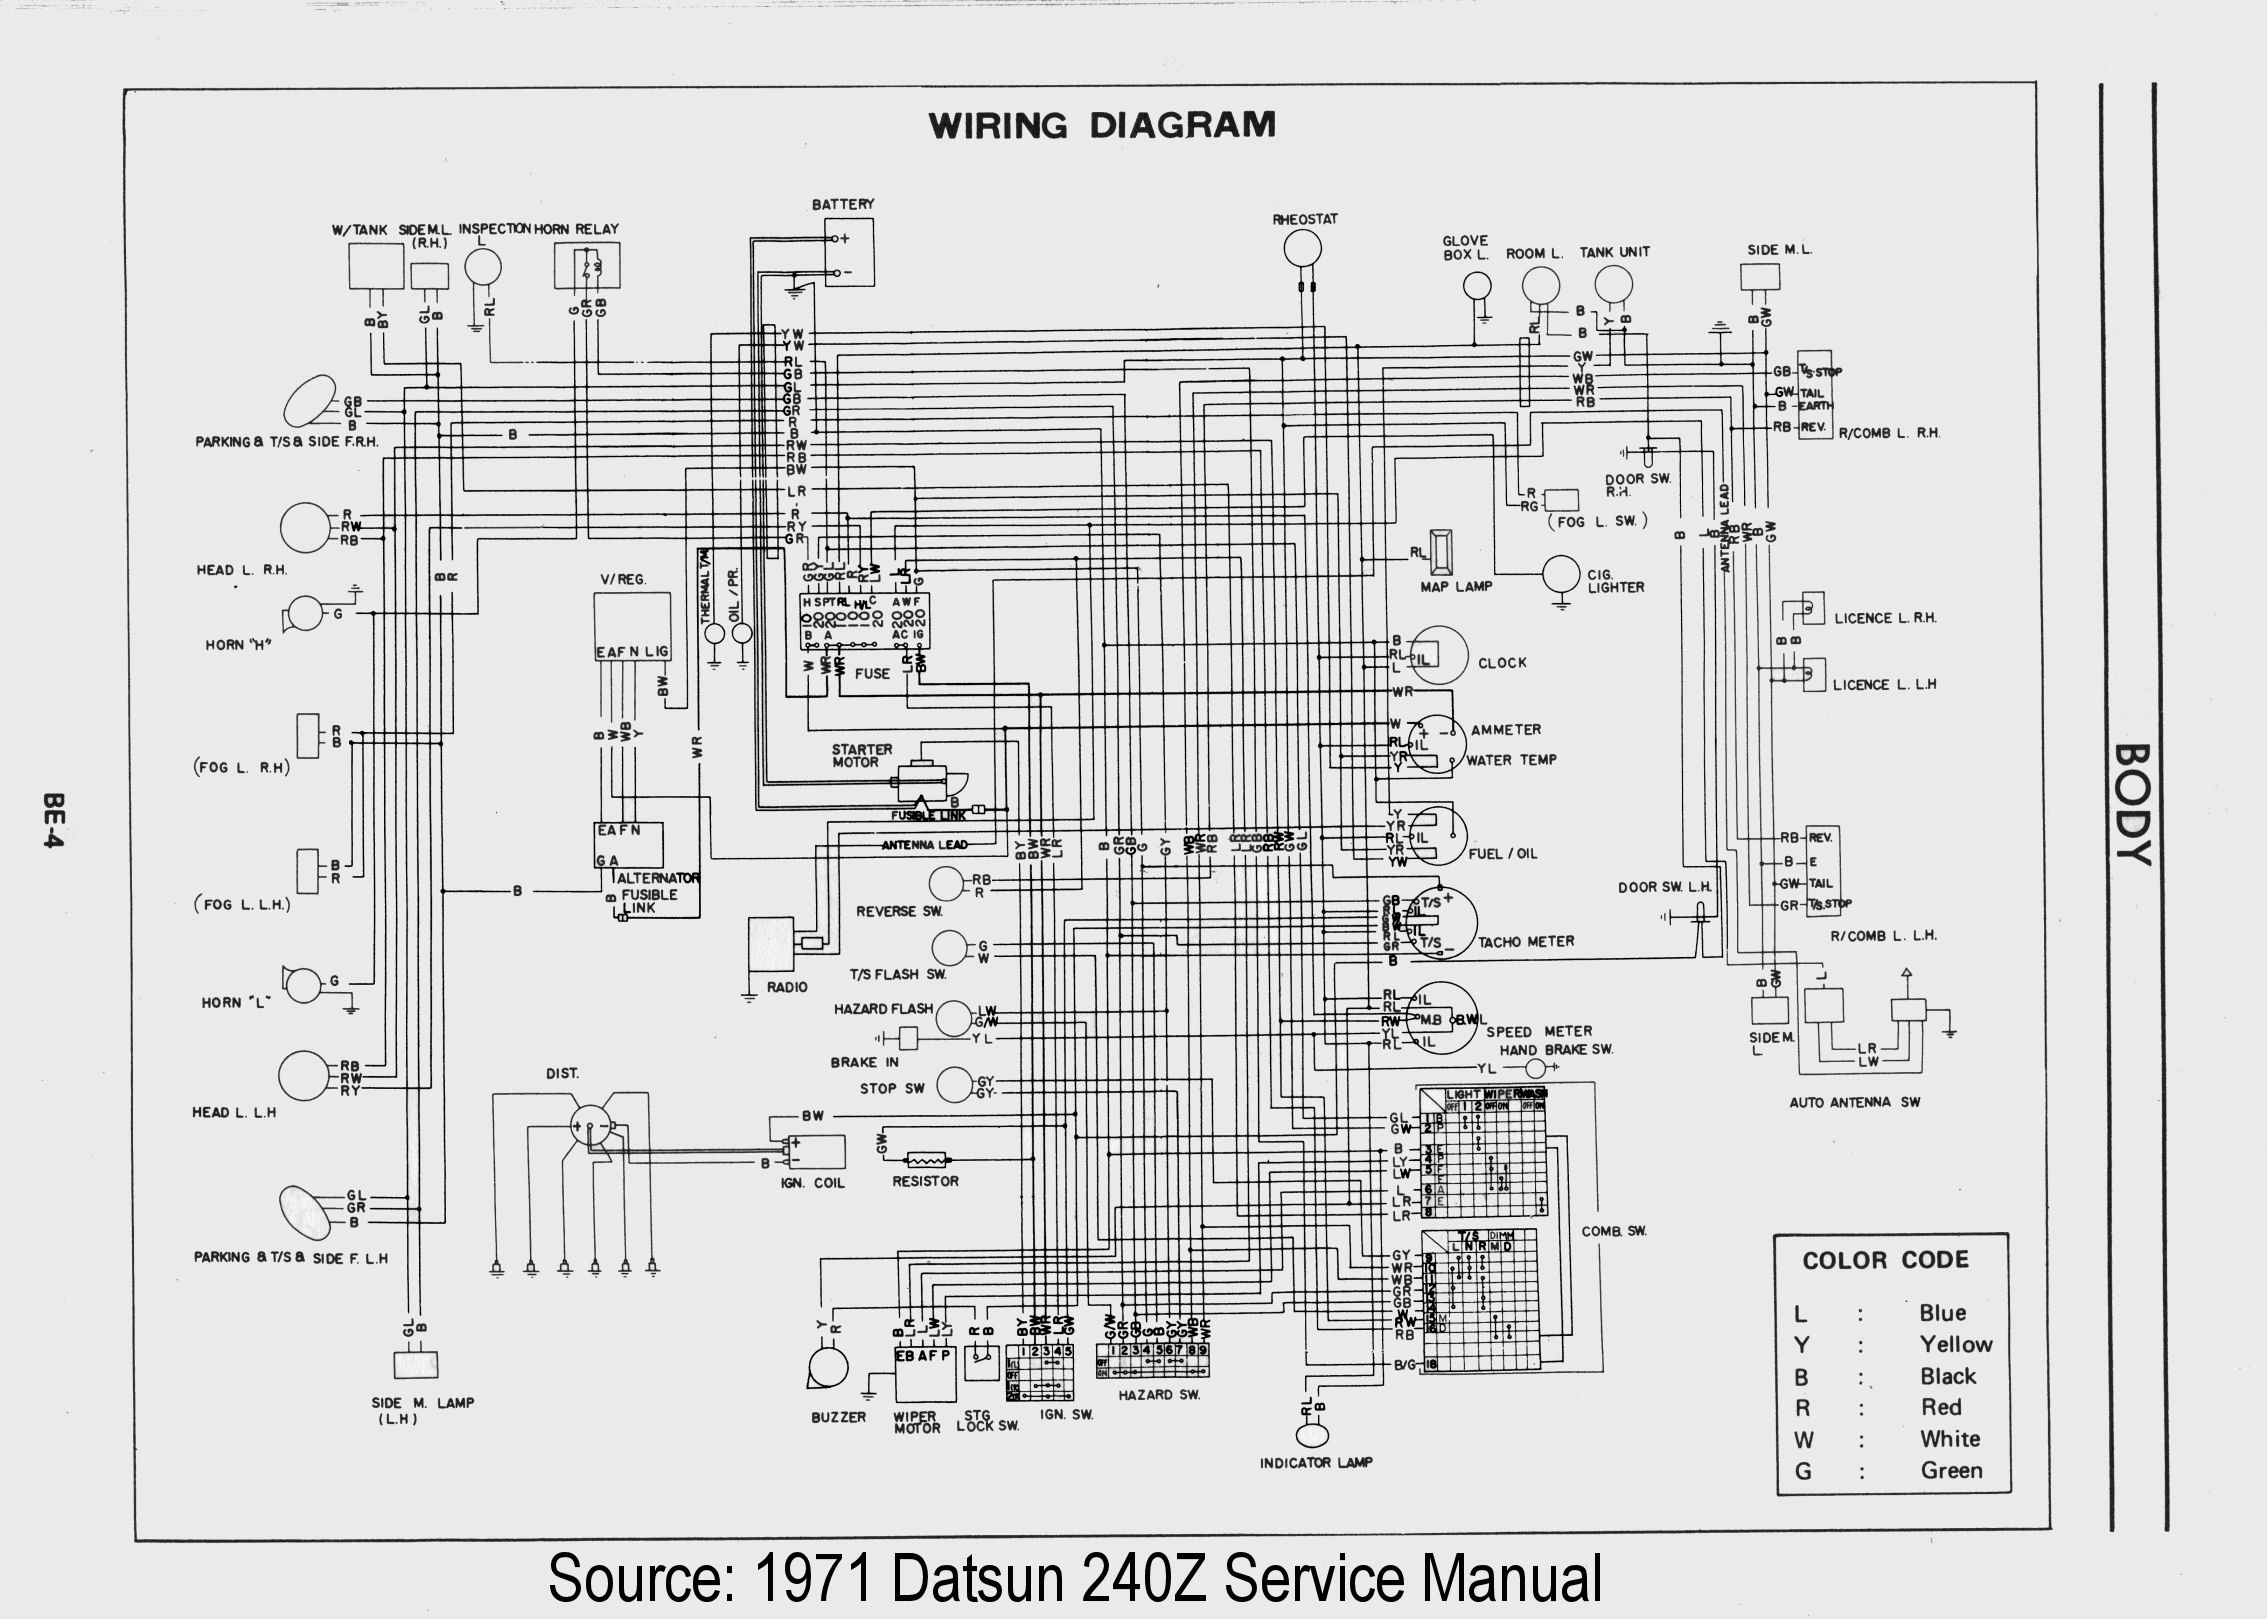 Wiring Diagram HiRes 2 generic wiring troubleshooting checklist woodworkerb 280zx wiring diagram at pacquiaovsvargaslive.co